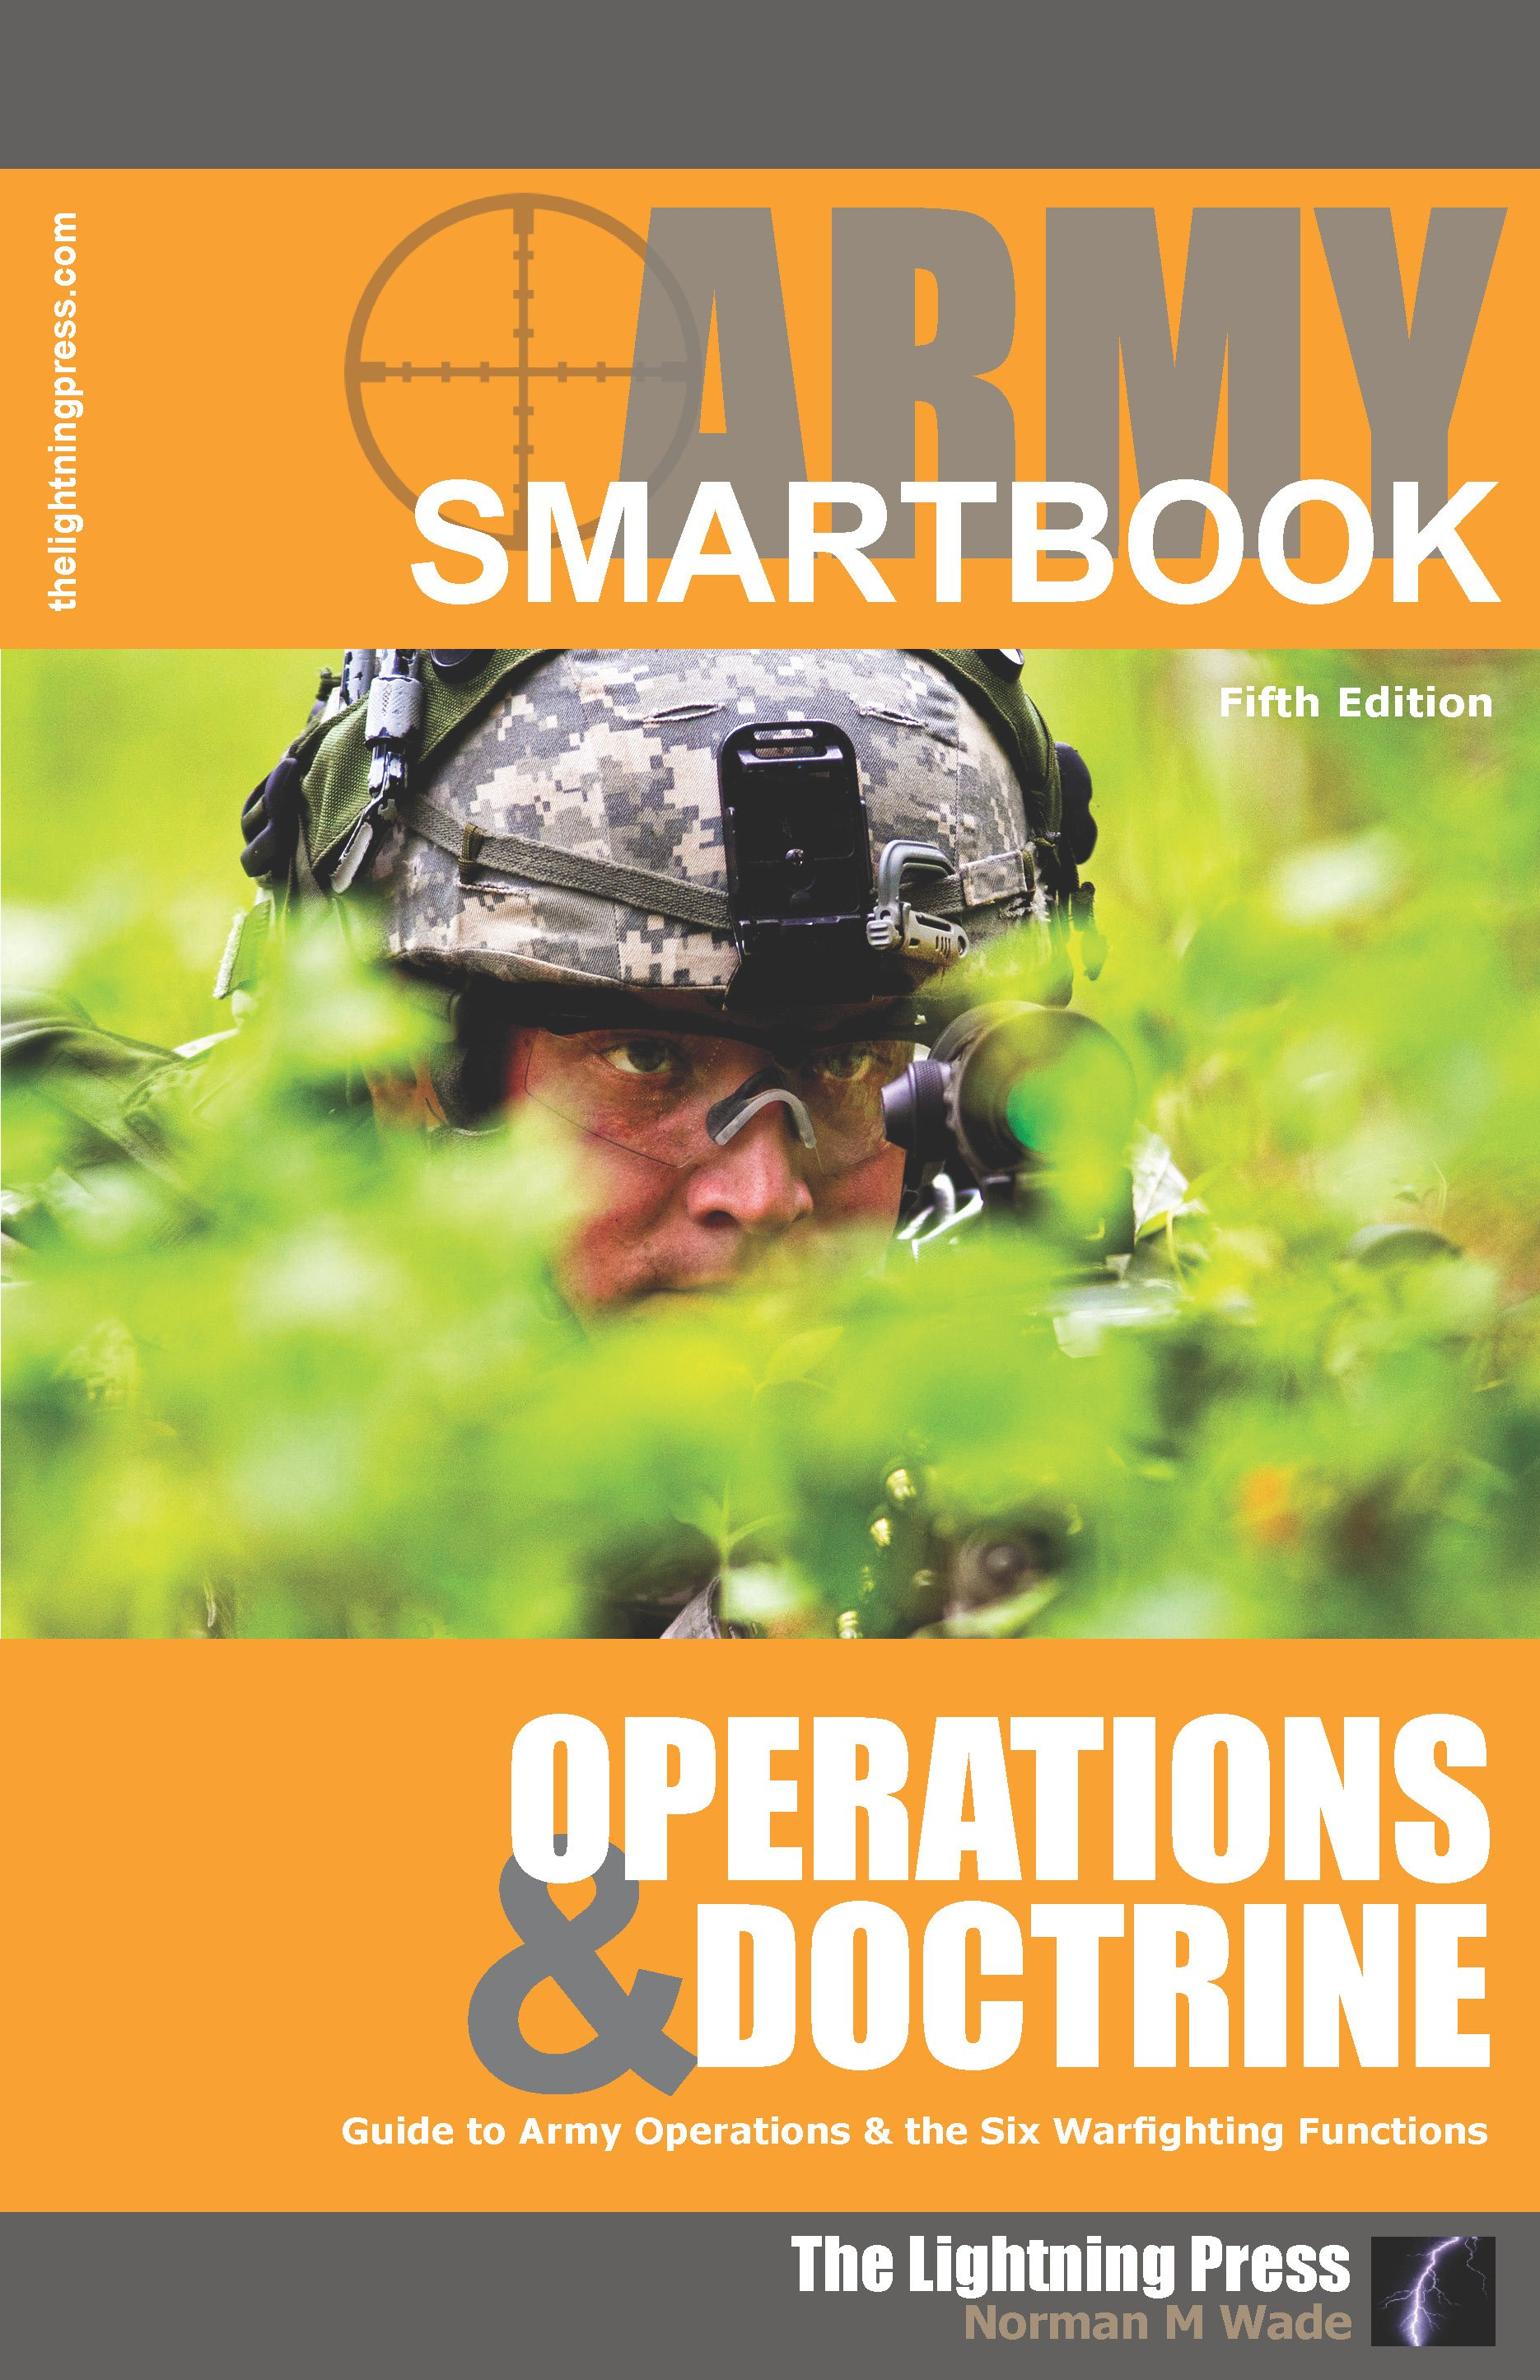 AODS5: The Army Operations & Doctrine SMARTbook, 5th Ed.